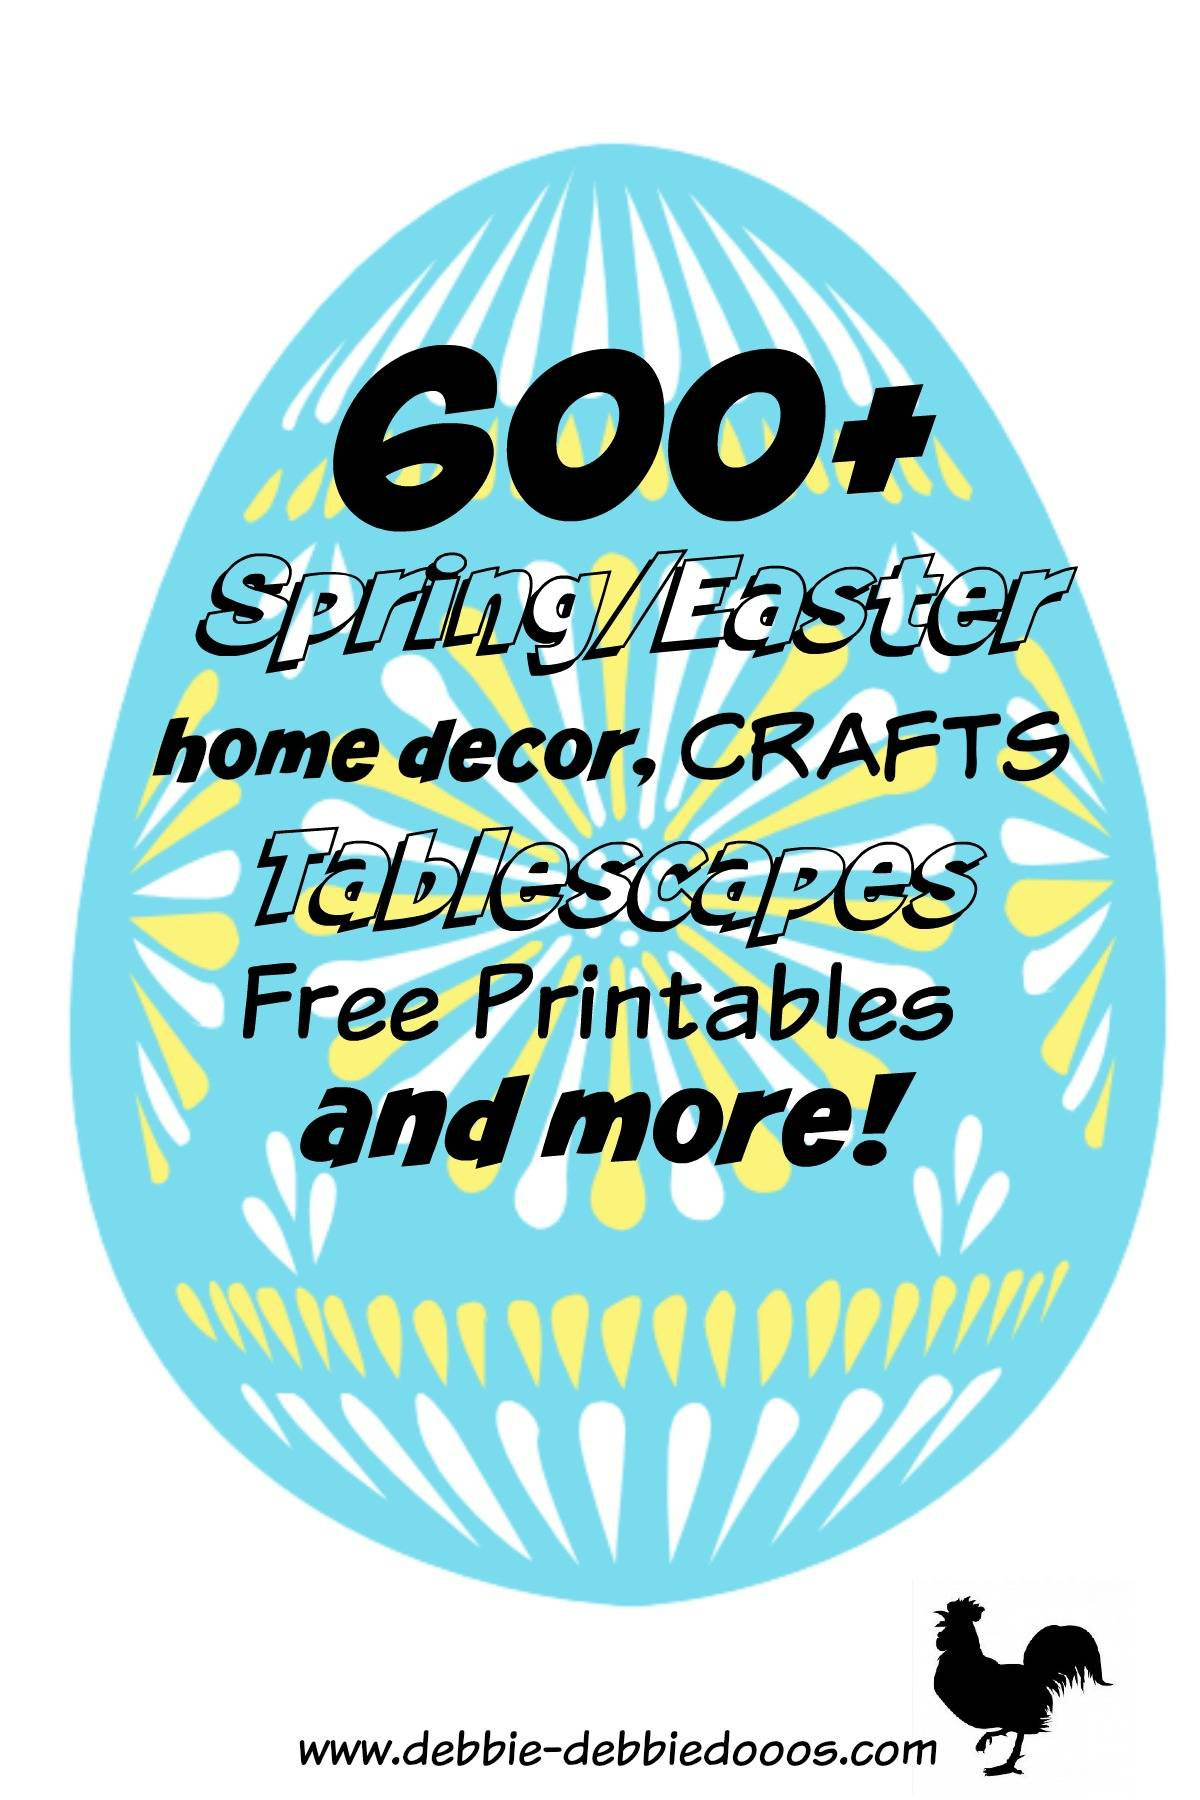 All Things Spring Over 600 Inspired Ideas Right Here